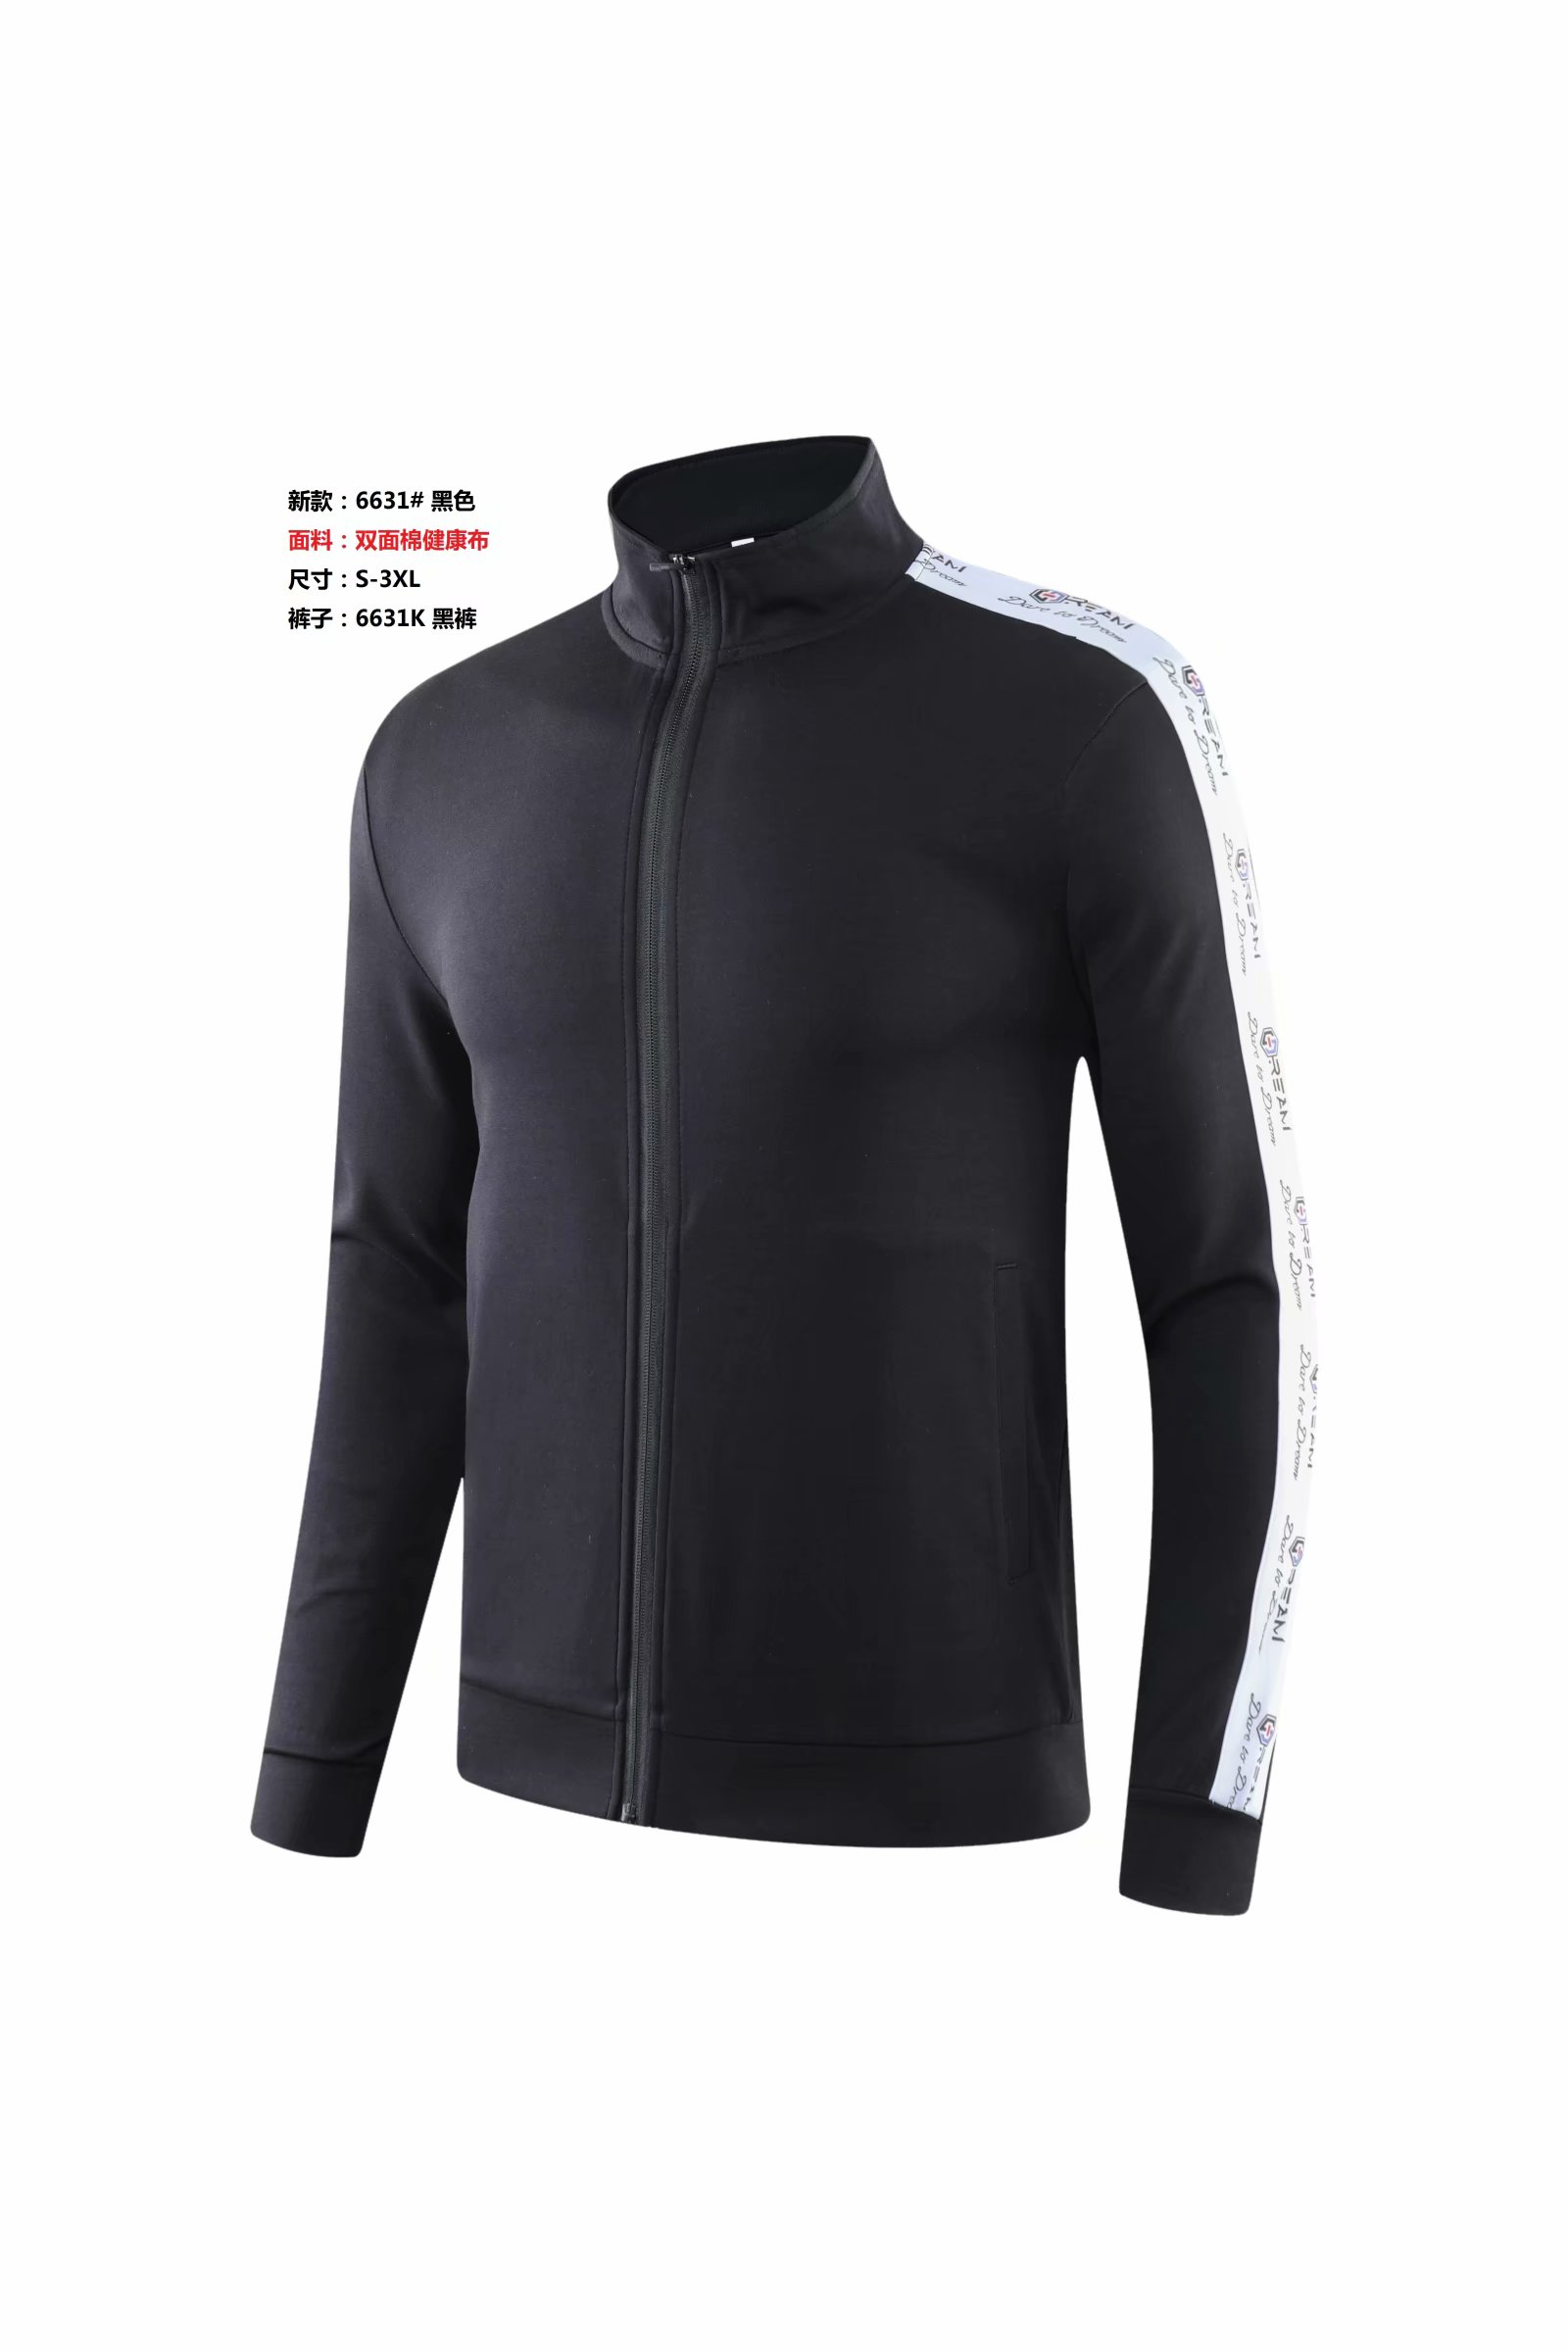 Wholesale In Stock Adult Top Quality Black Soccer Jackets